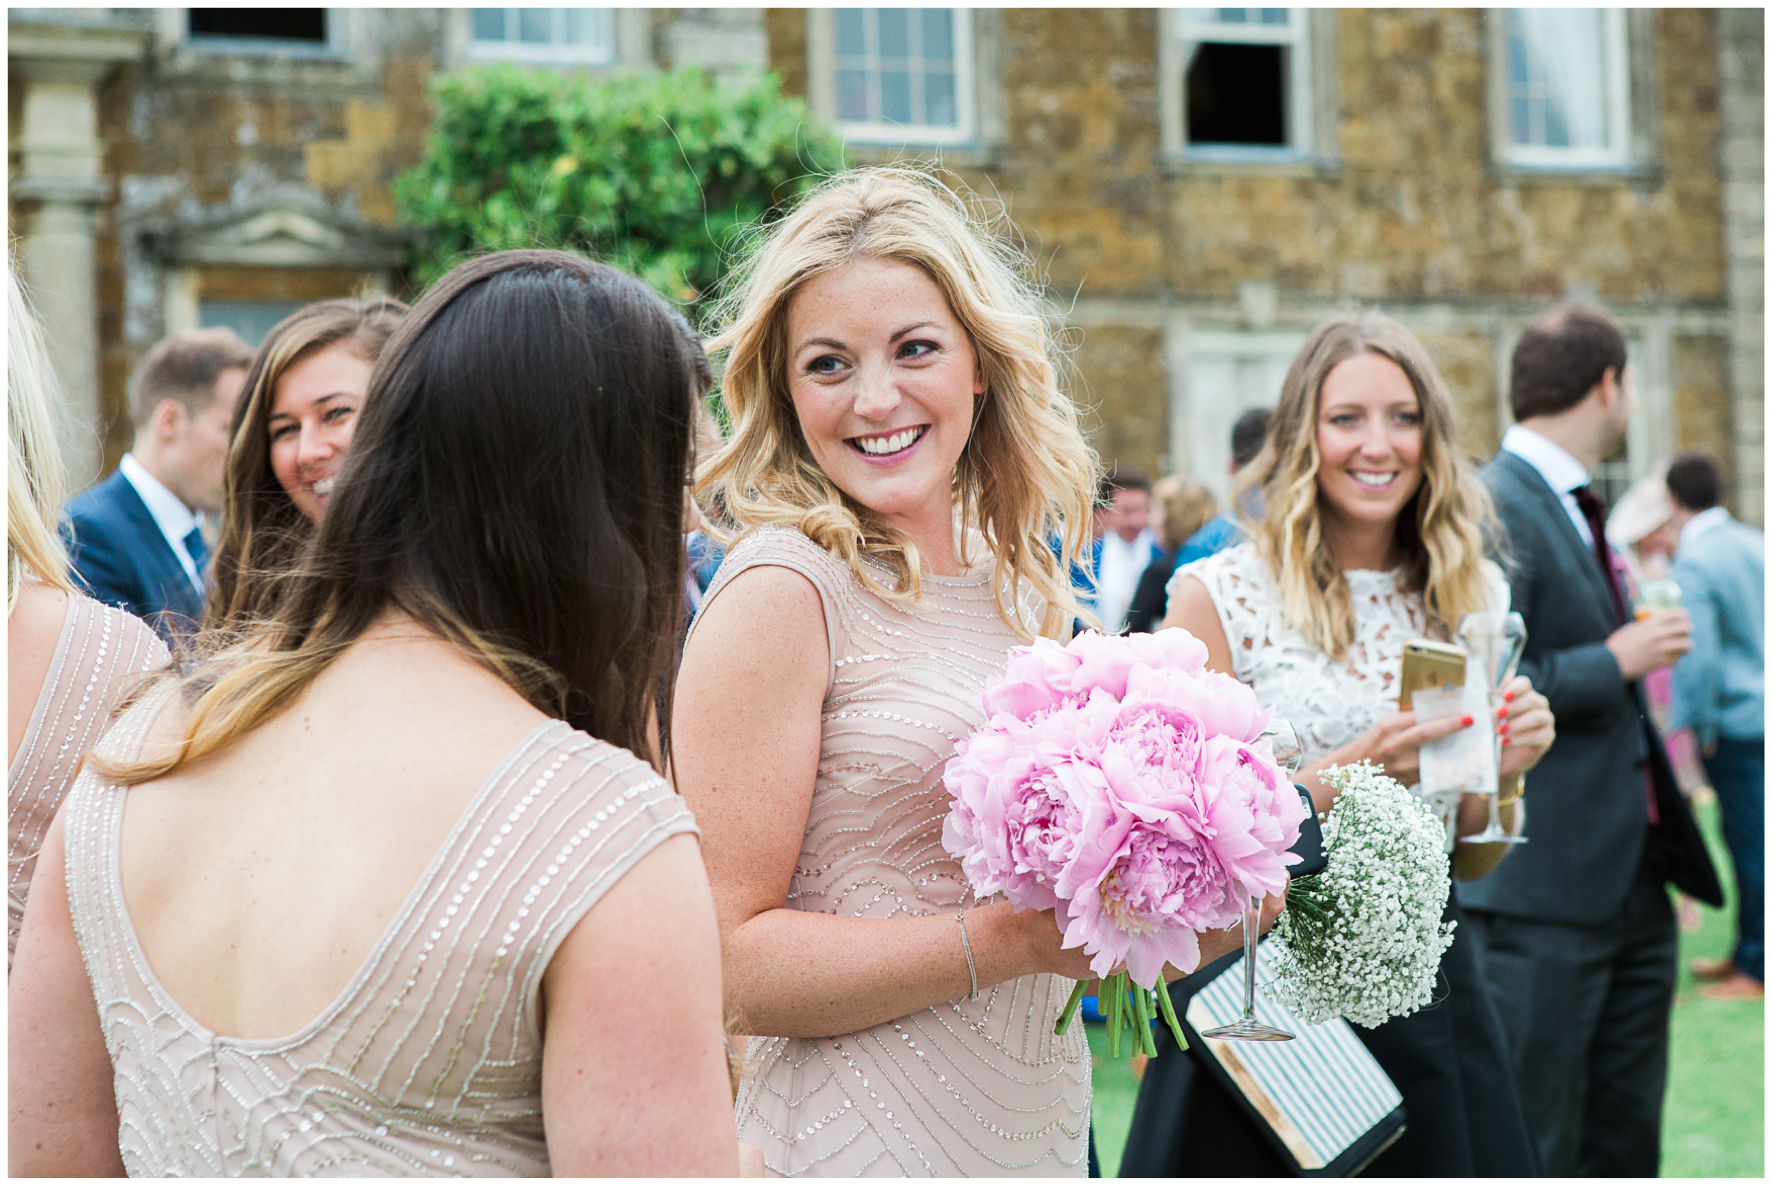 Aynhoe Park wedding, wedding guests, bridesmaid